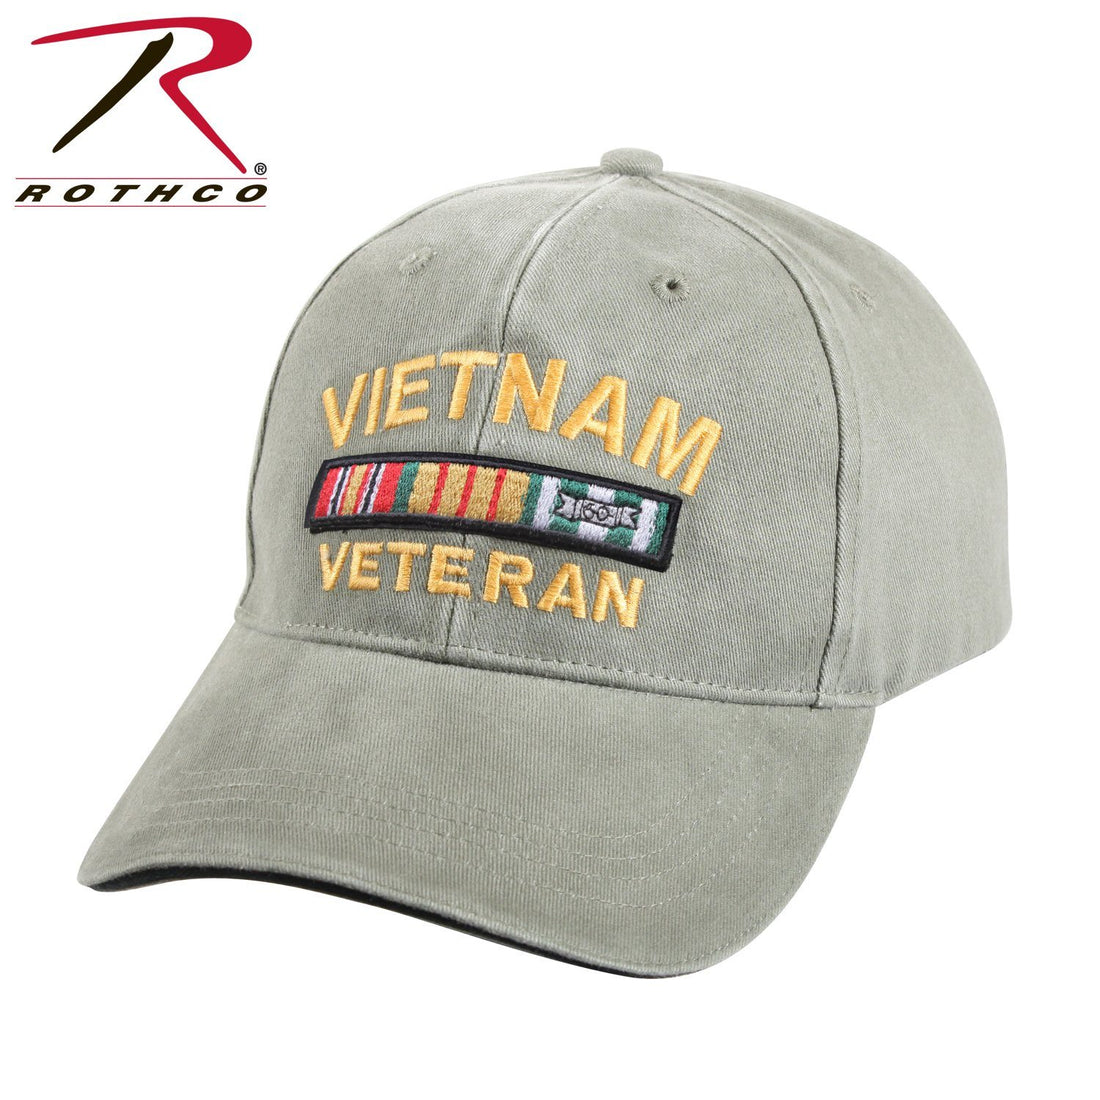 "Front view of the military green USMC hat at Marine Corps Direct that says ""VIETNAM VETERAN"" on the front."